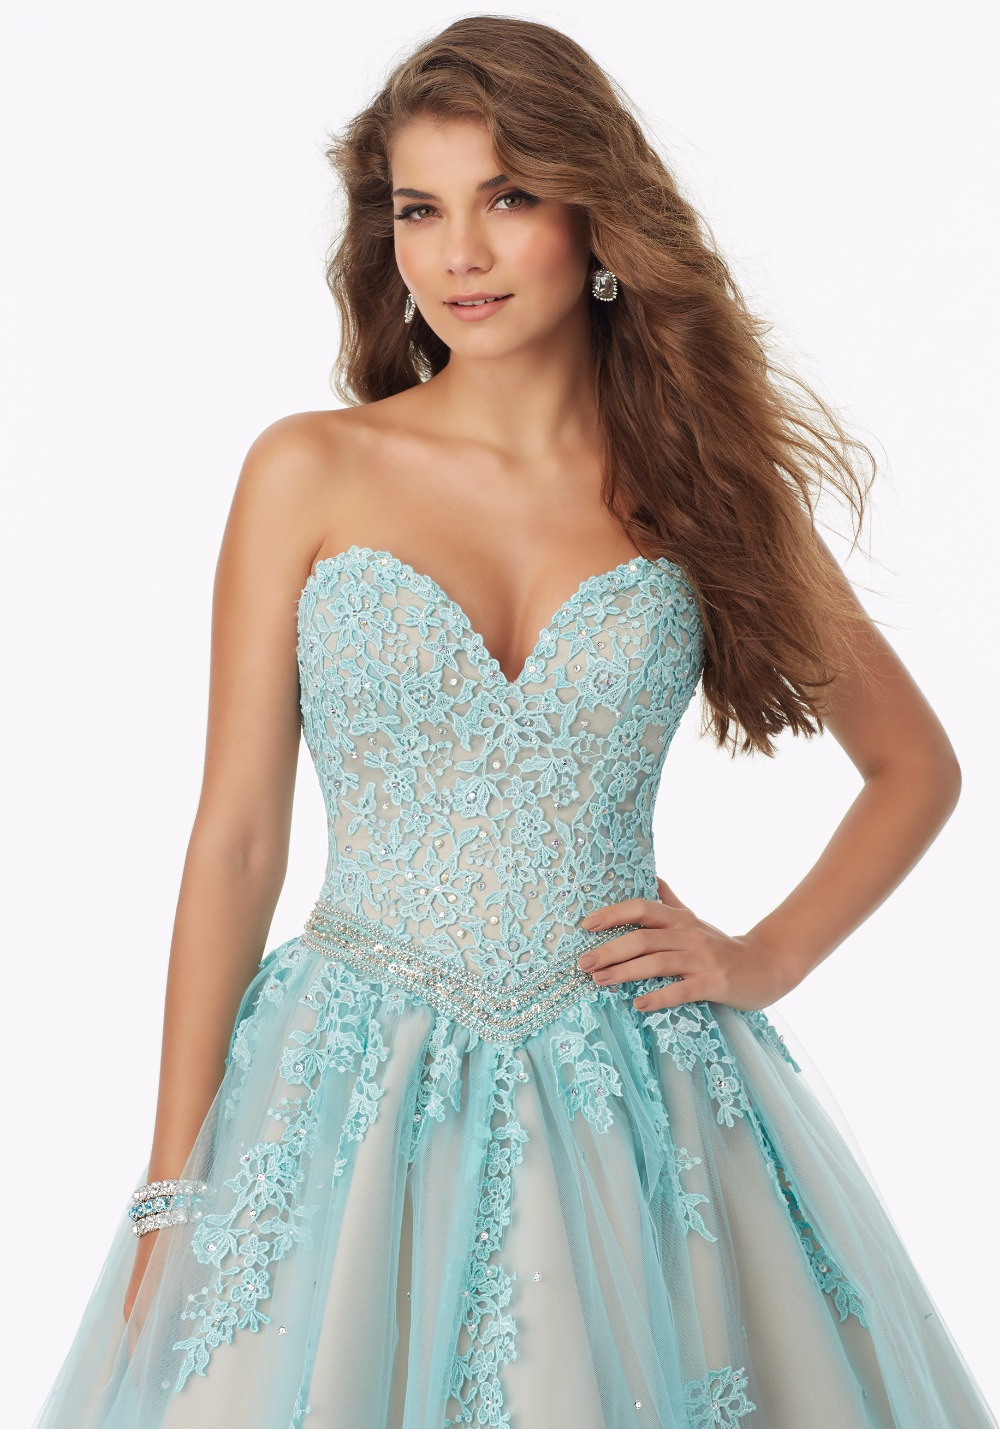 Aliexpress.com : Buy White Aqua Nude Two Toned Ball Gown Prom ...